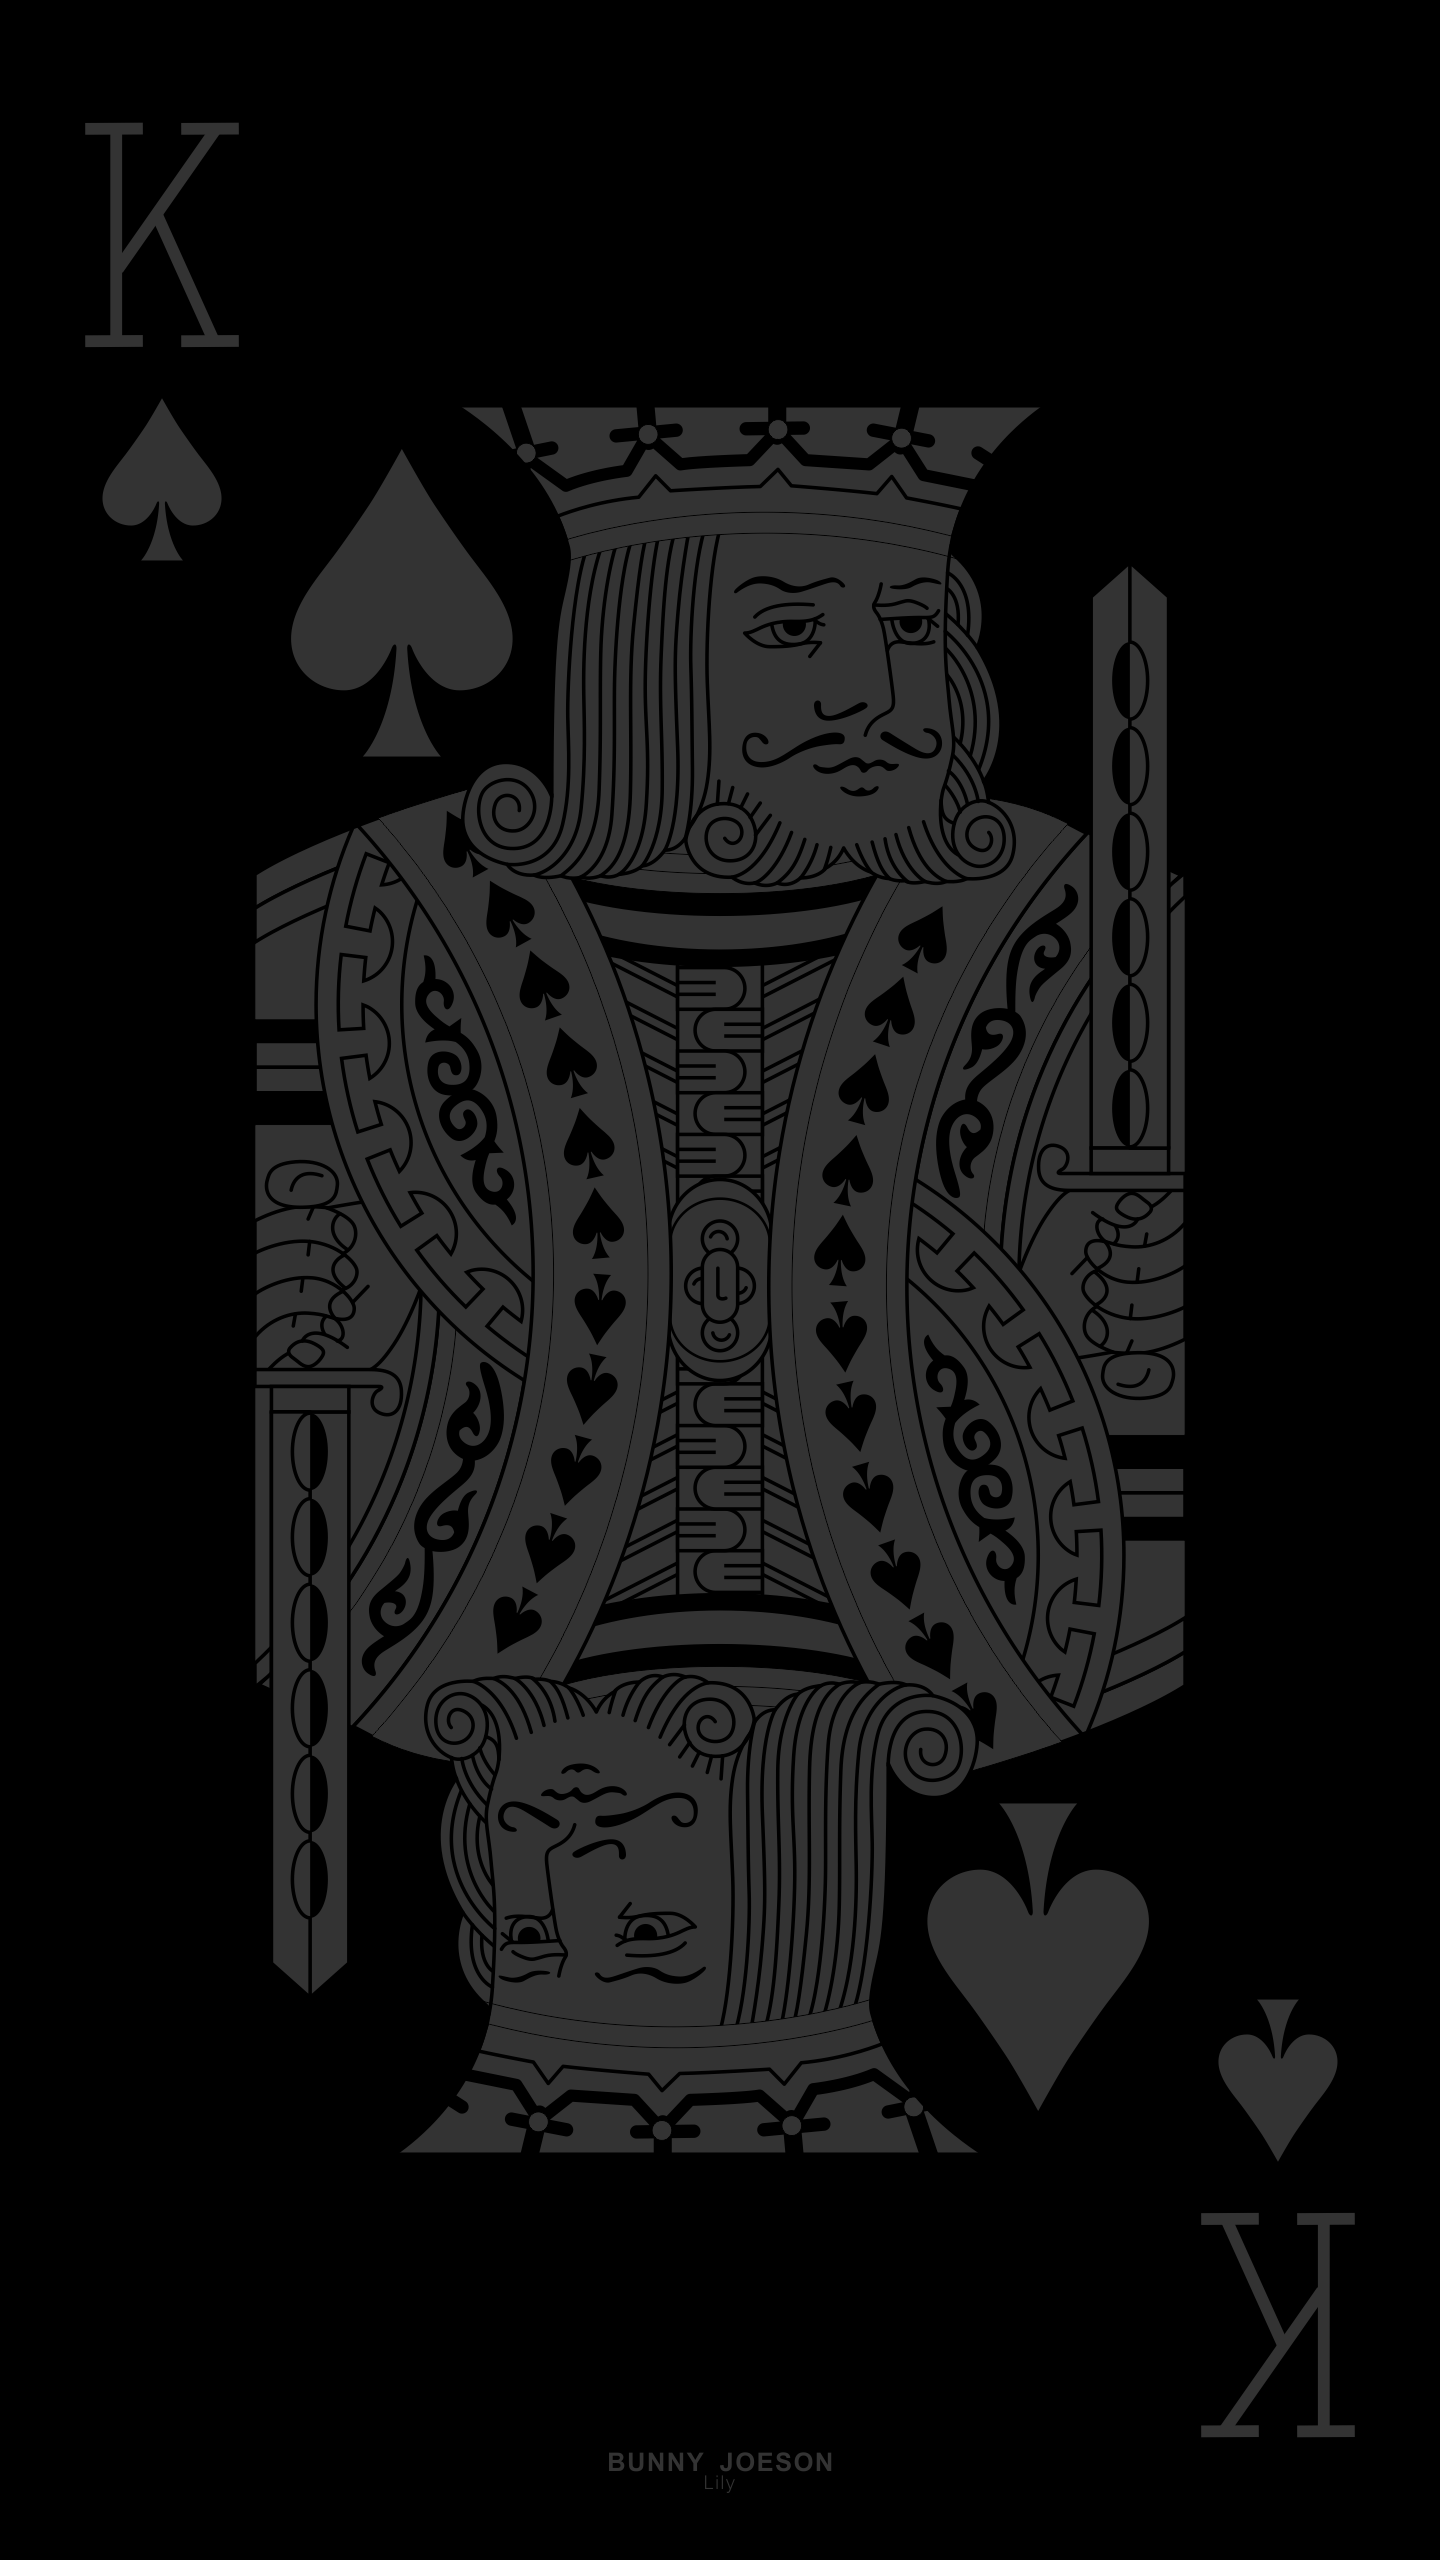 #iphone# #phone# #life# #design# #wallpaper# #color# #iOS# #poker# from Uploaded by user